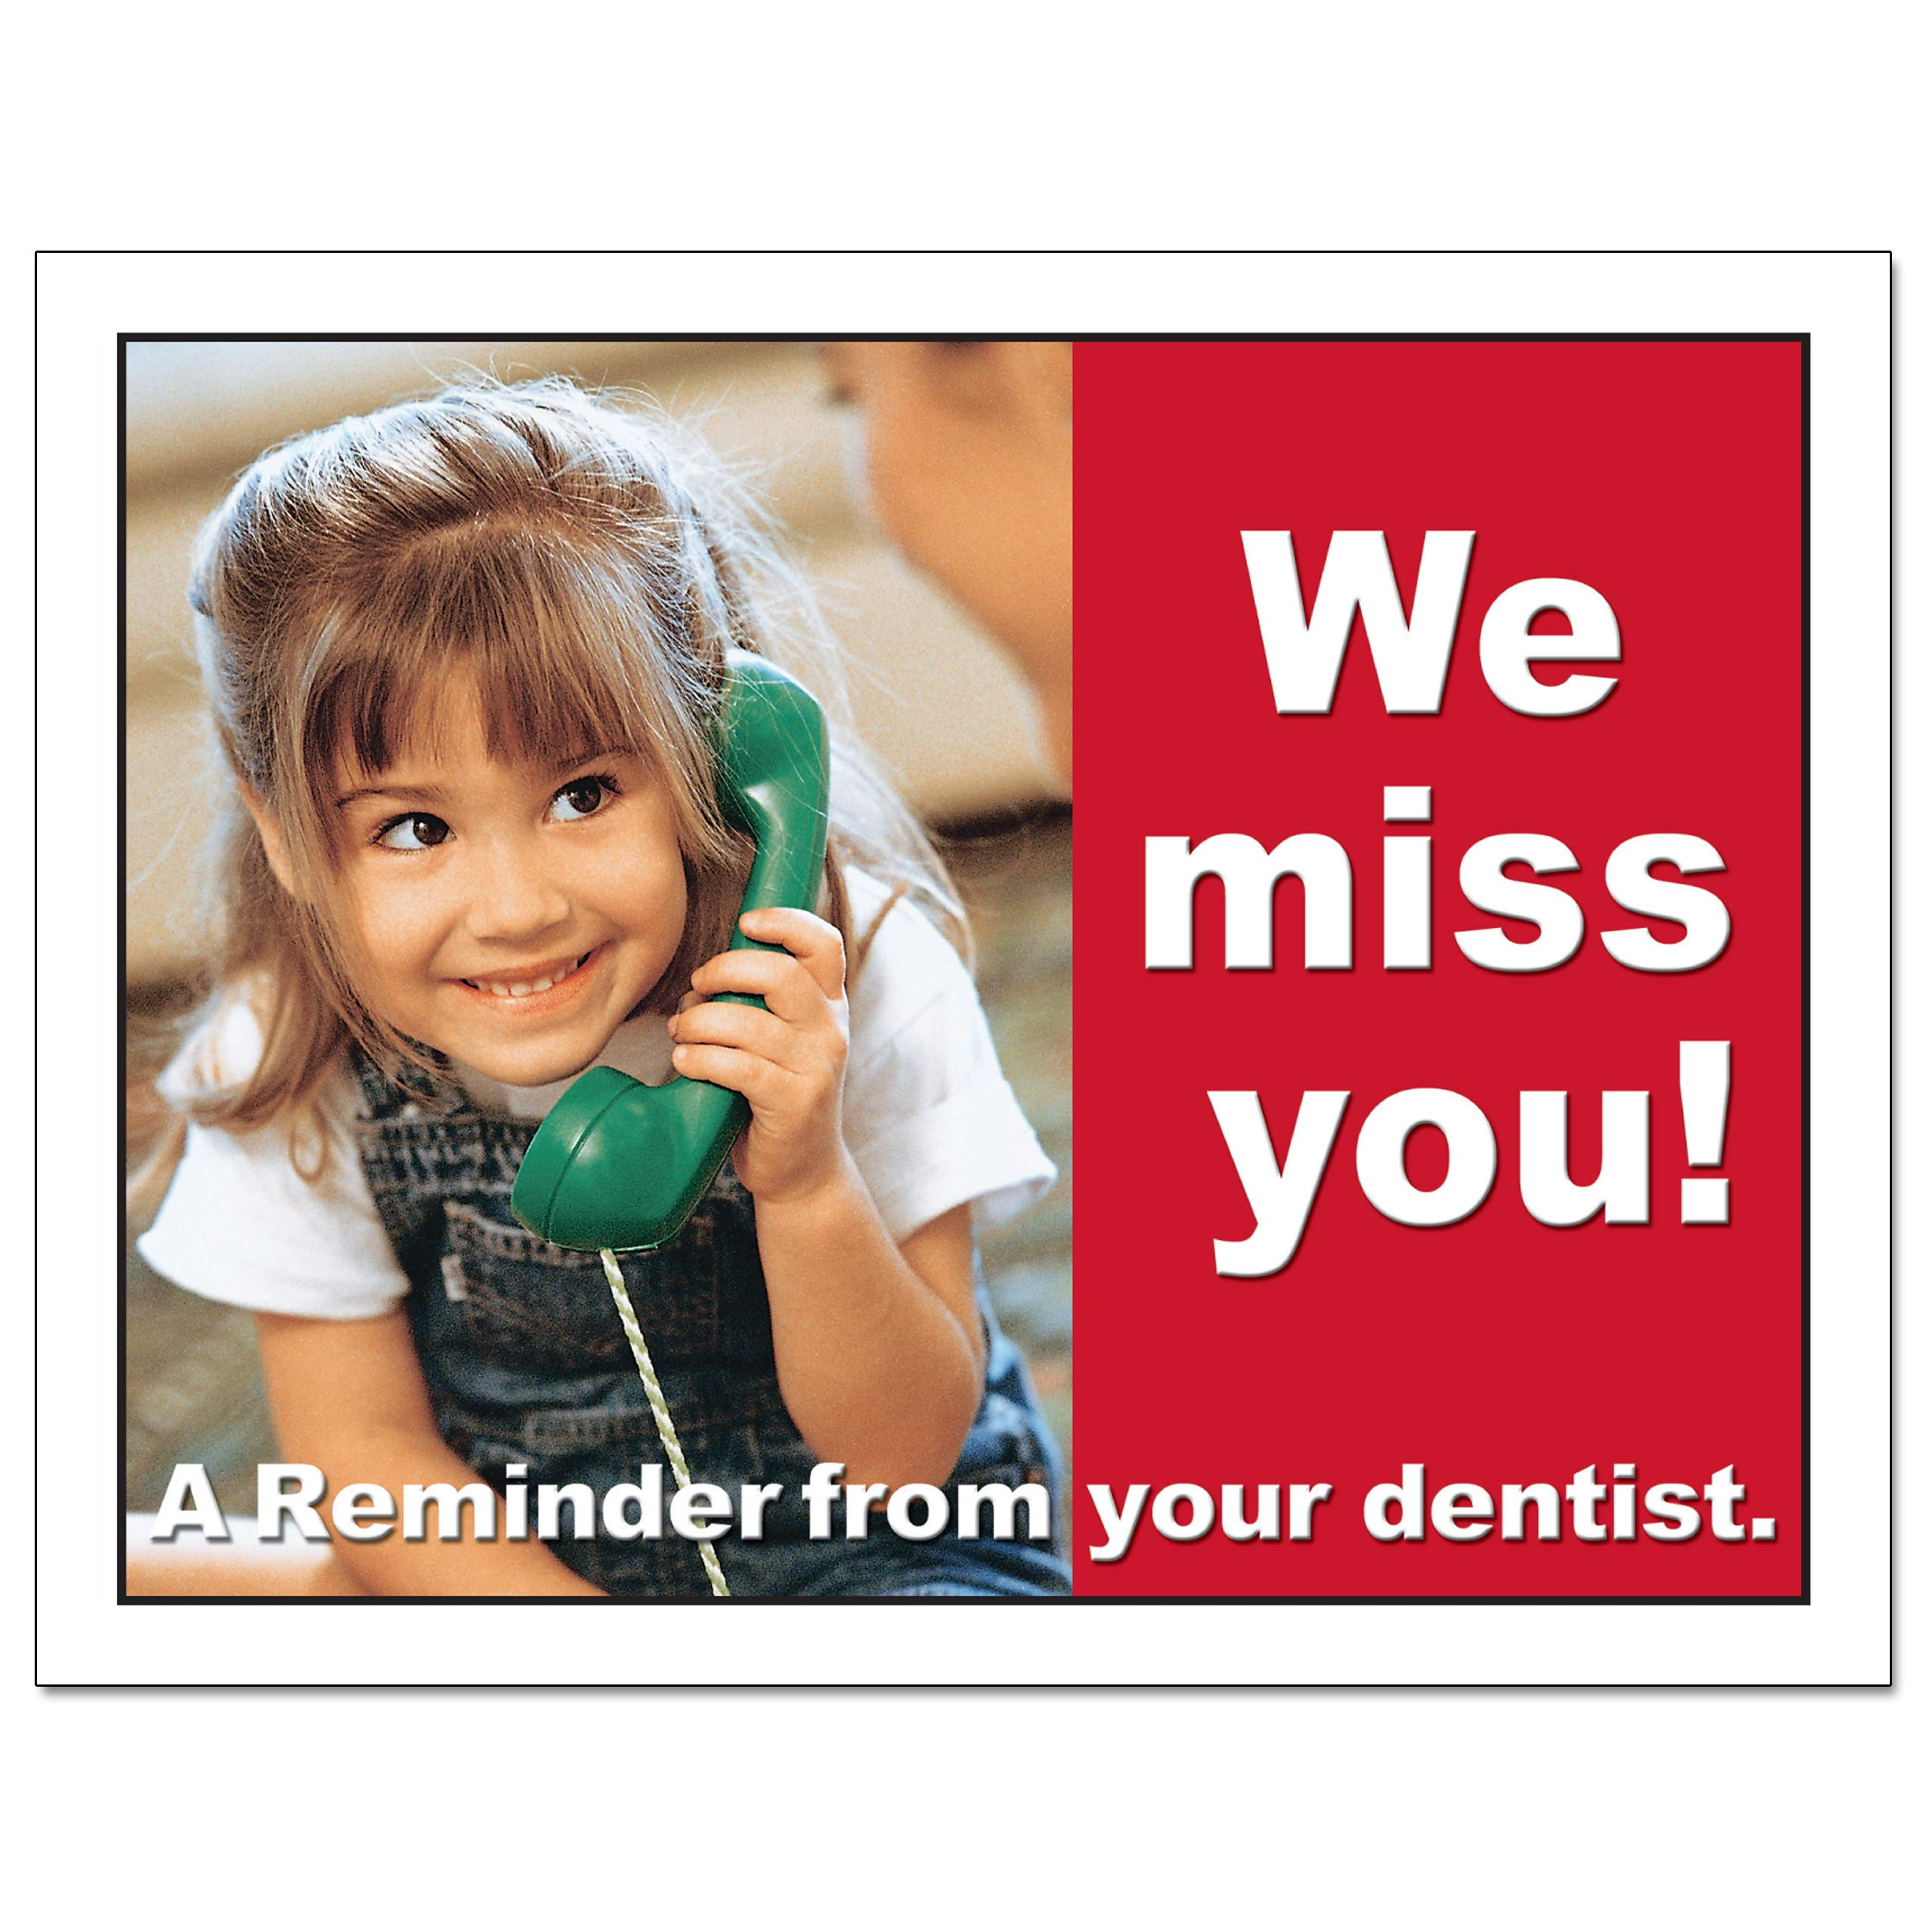 Laser Reminder Postcards, Dental Appointment Reminder Postcards. 4 Cards Perforated for Tear-Off at 4.25'' x 5.5'' on an 8.5'' x 11'' Sheet of 8 Pt Card Stock. DEN103-LZS (1000) by Custom Recall (Image #3)